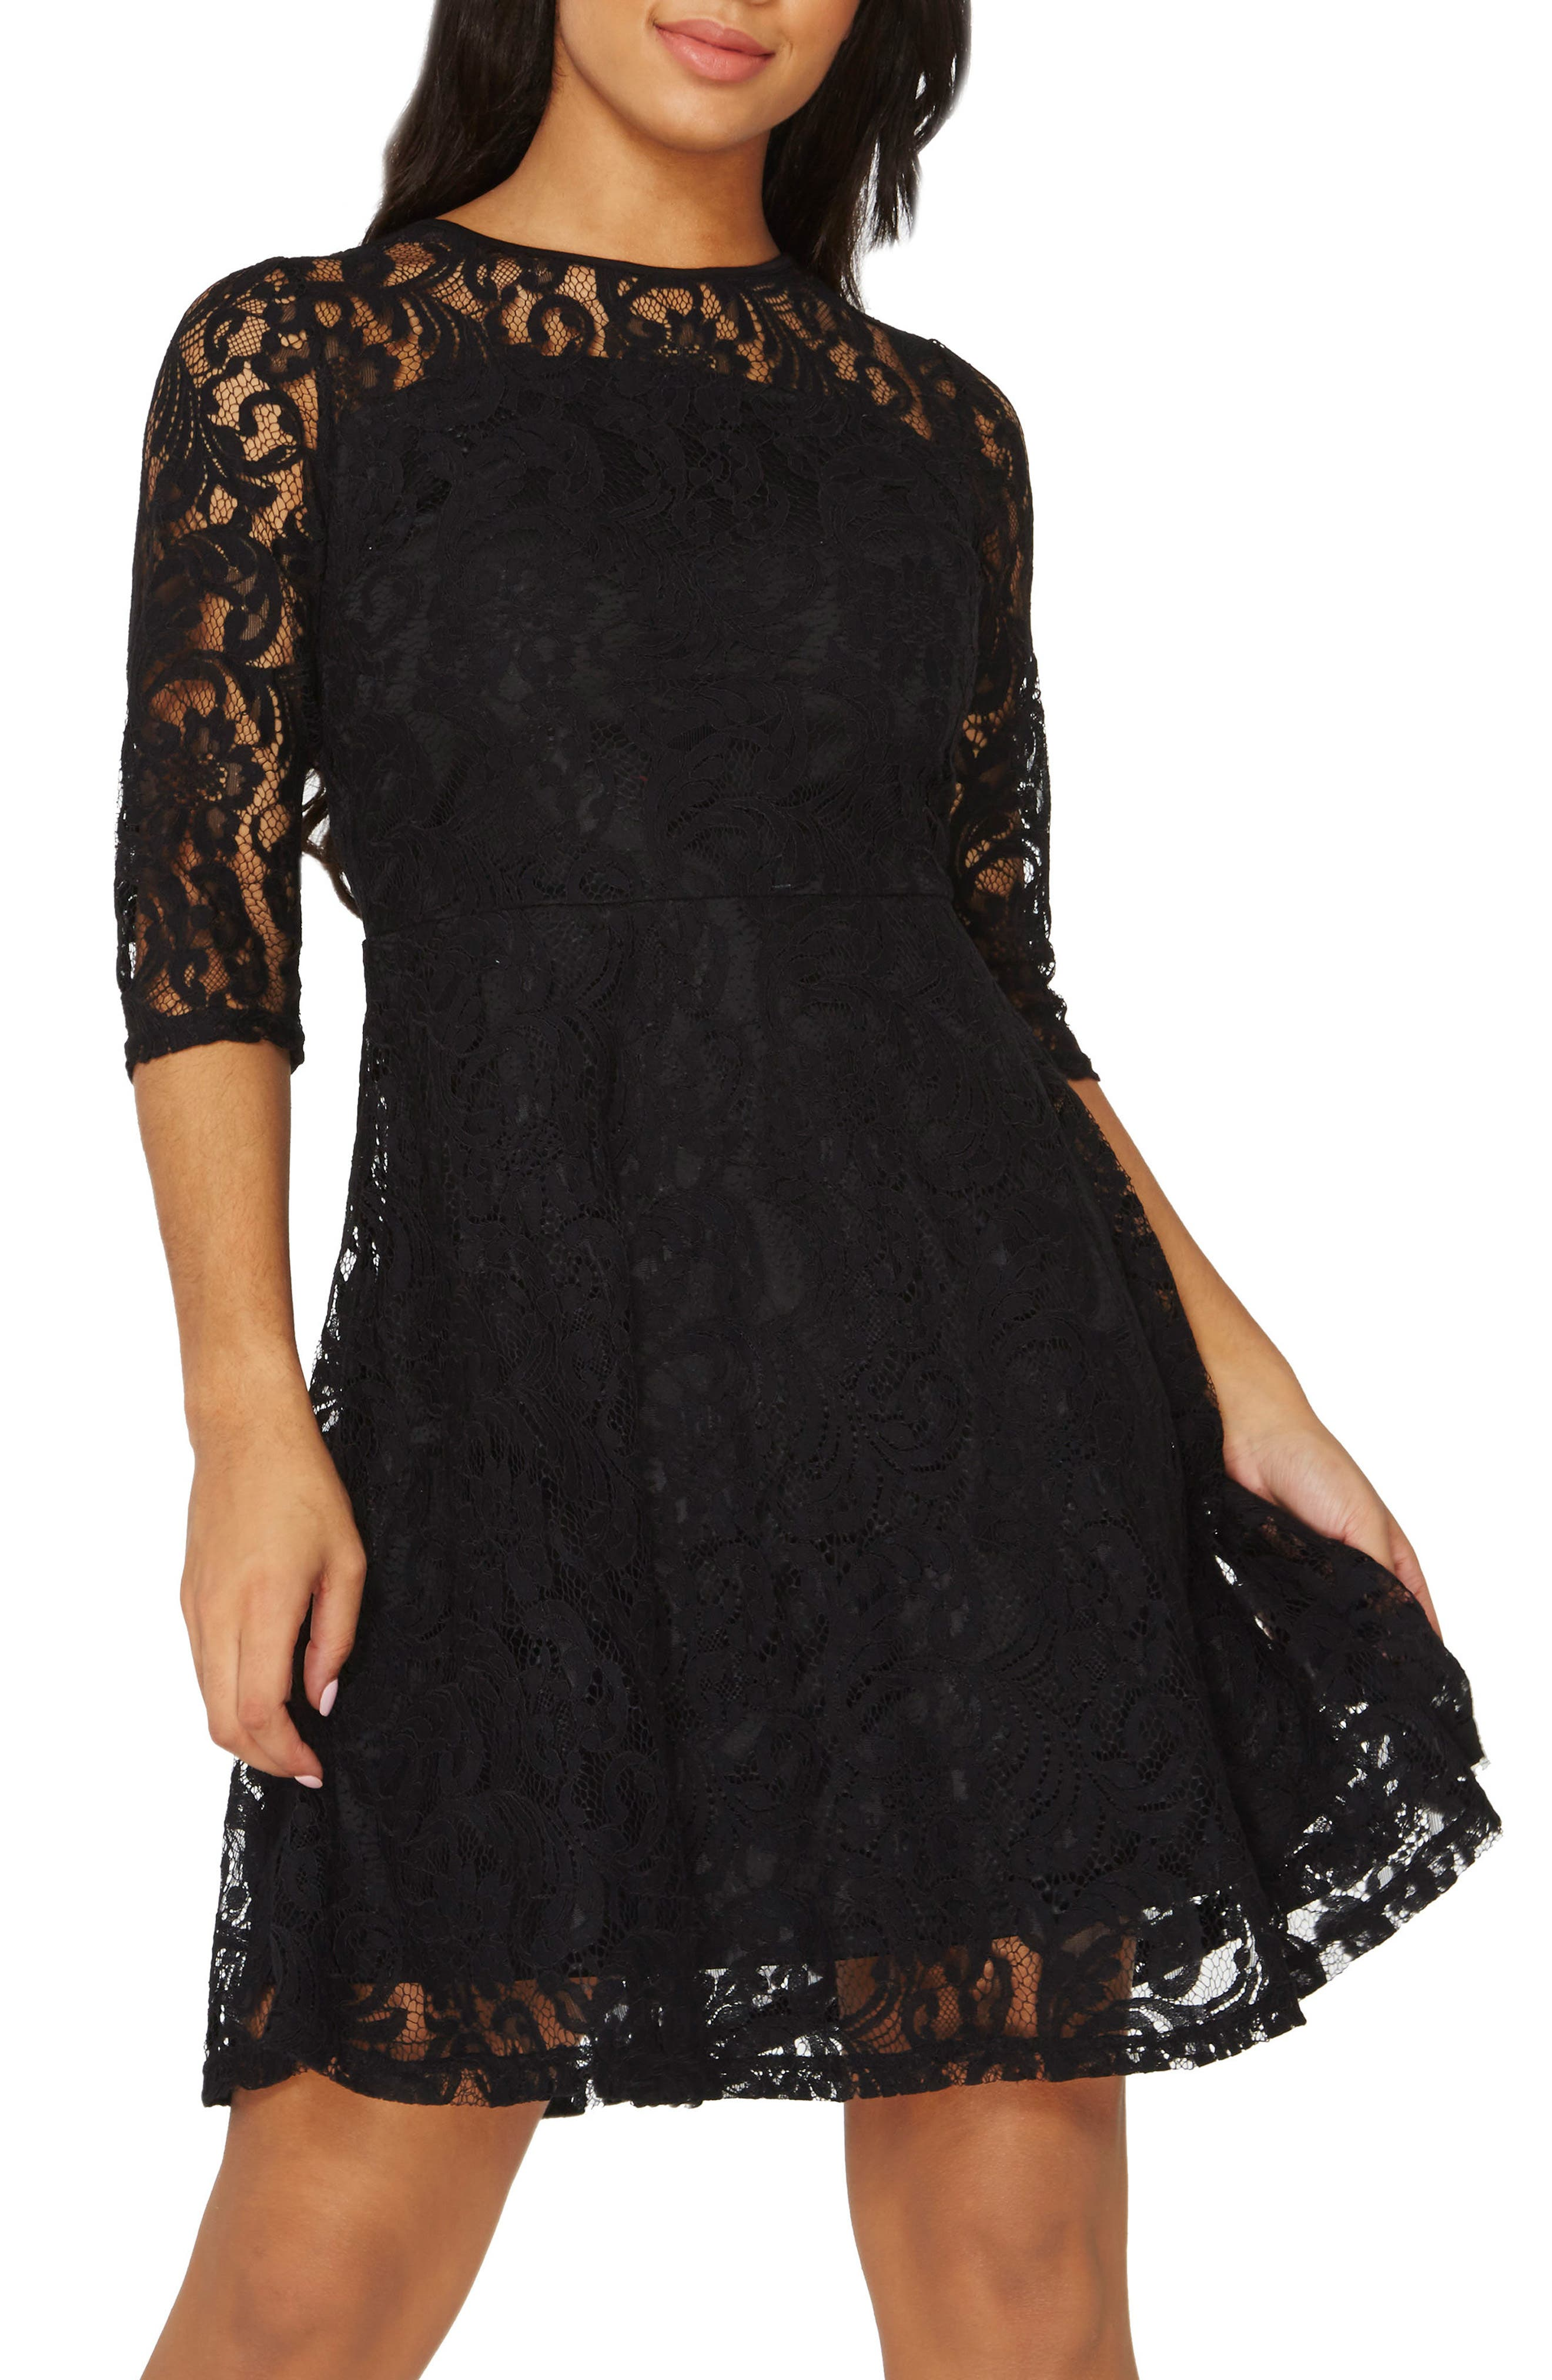 Alternate Image 1 Selected - Dorothy Perkins Lace Fit & Flare Dress